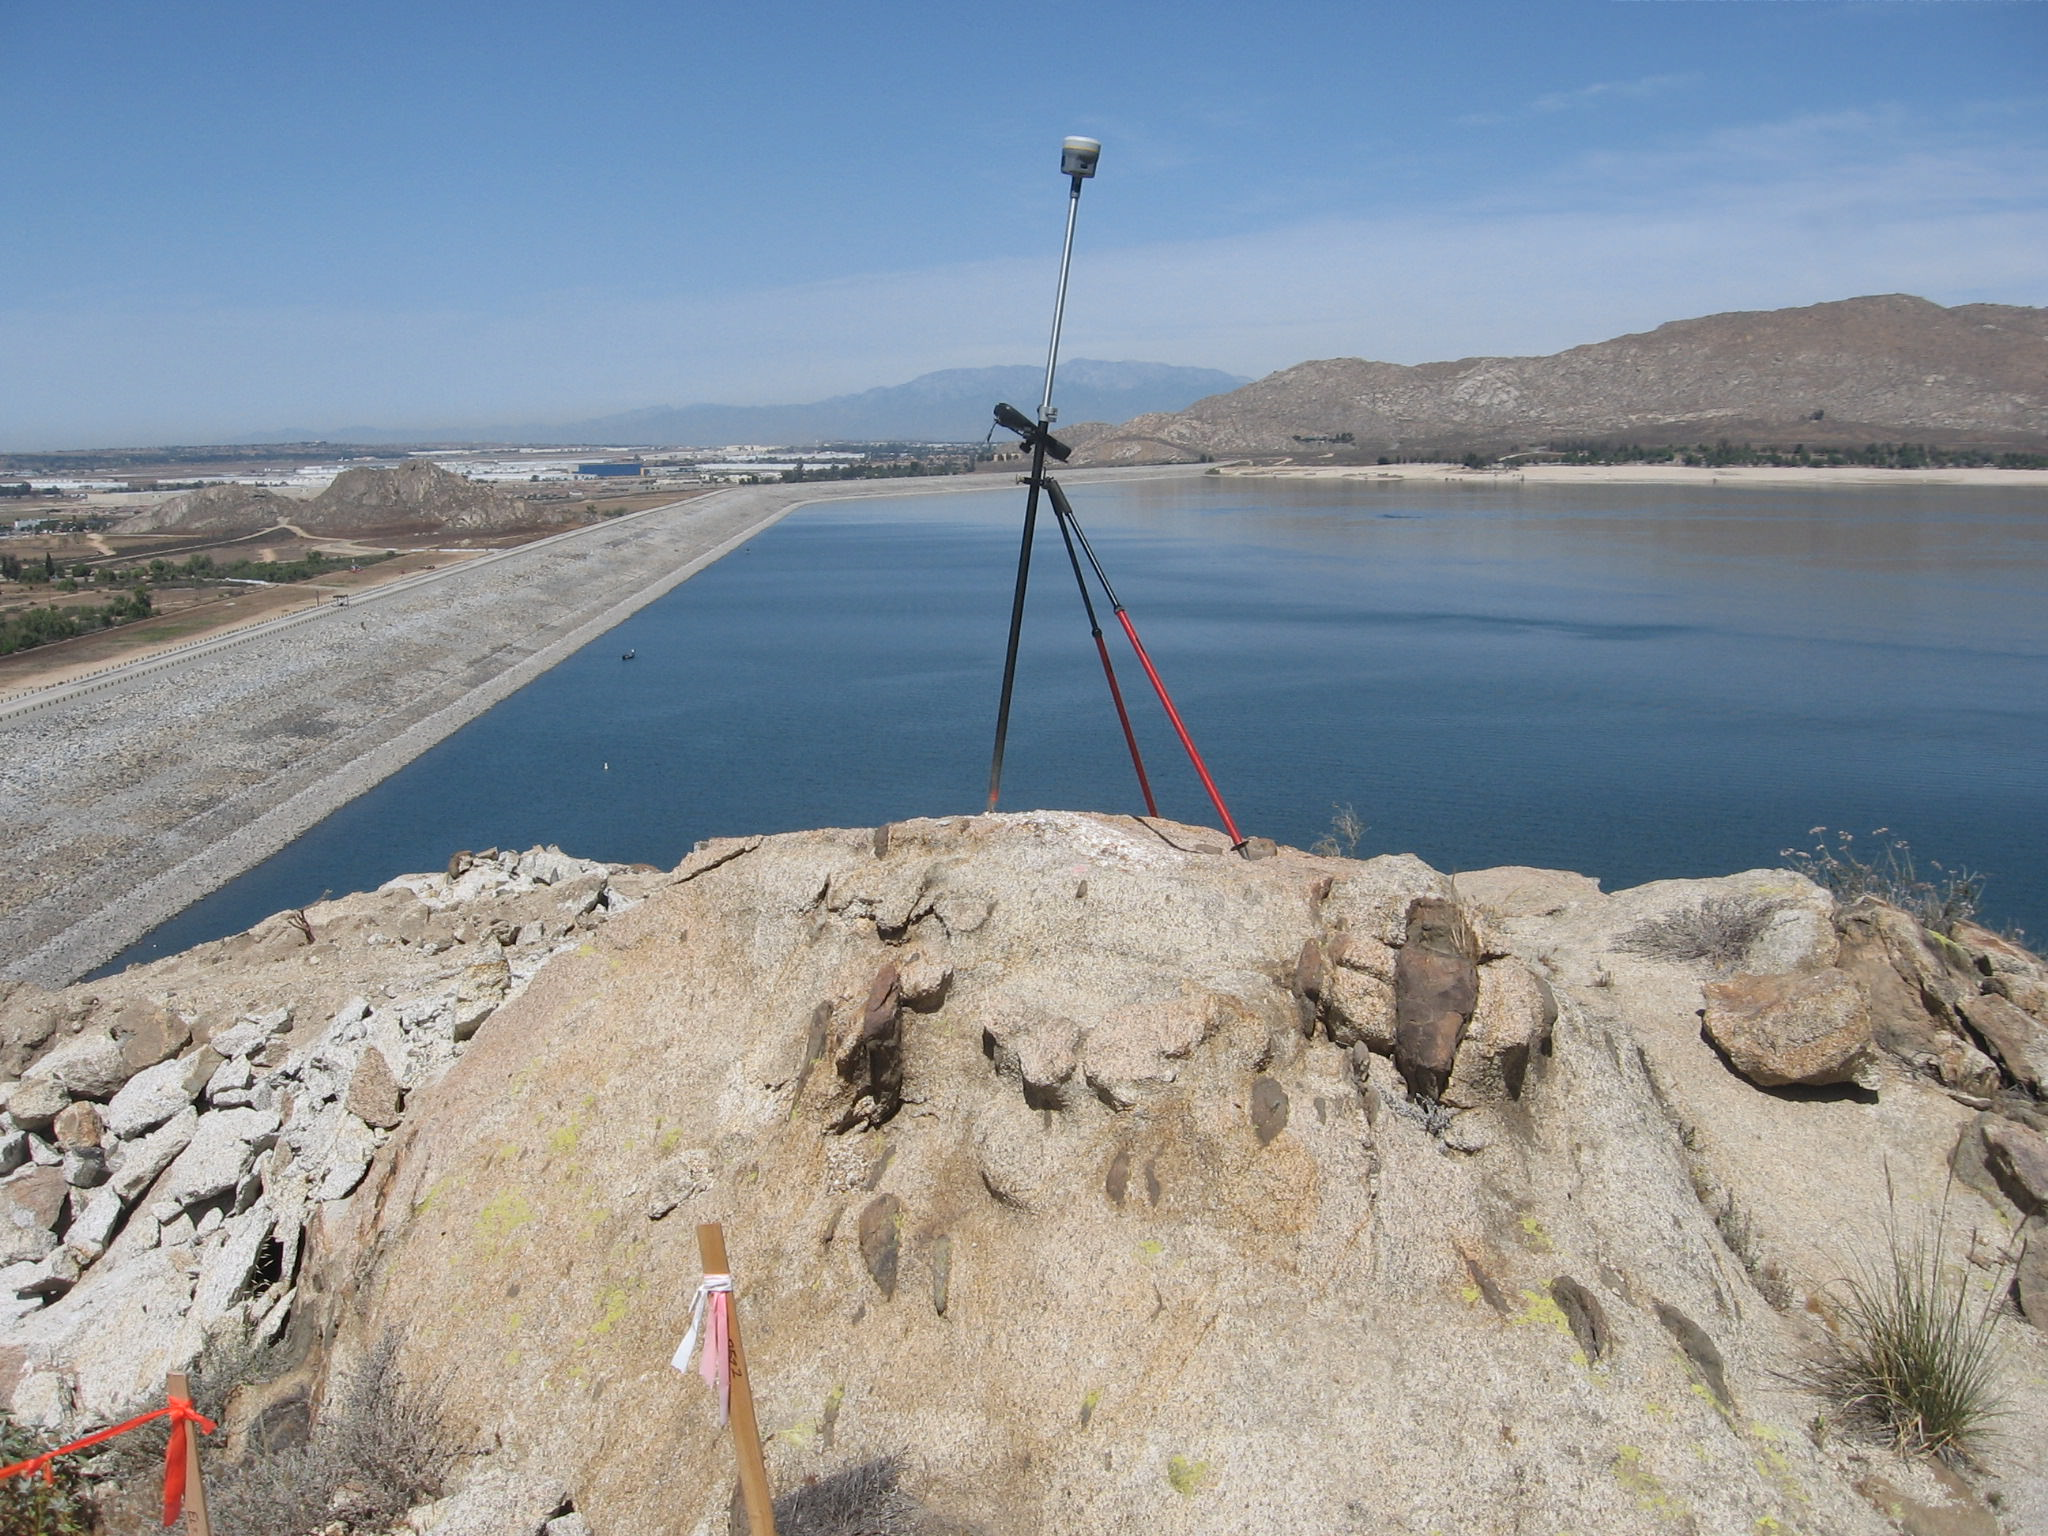 Lake Perris Dam with Surveying Equipment